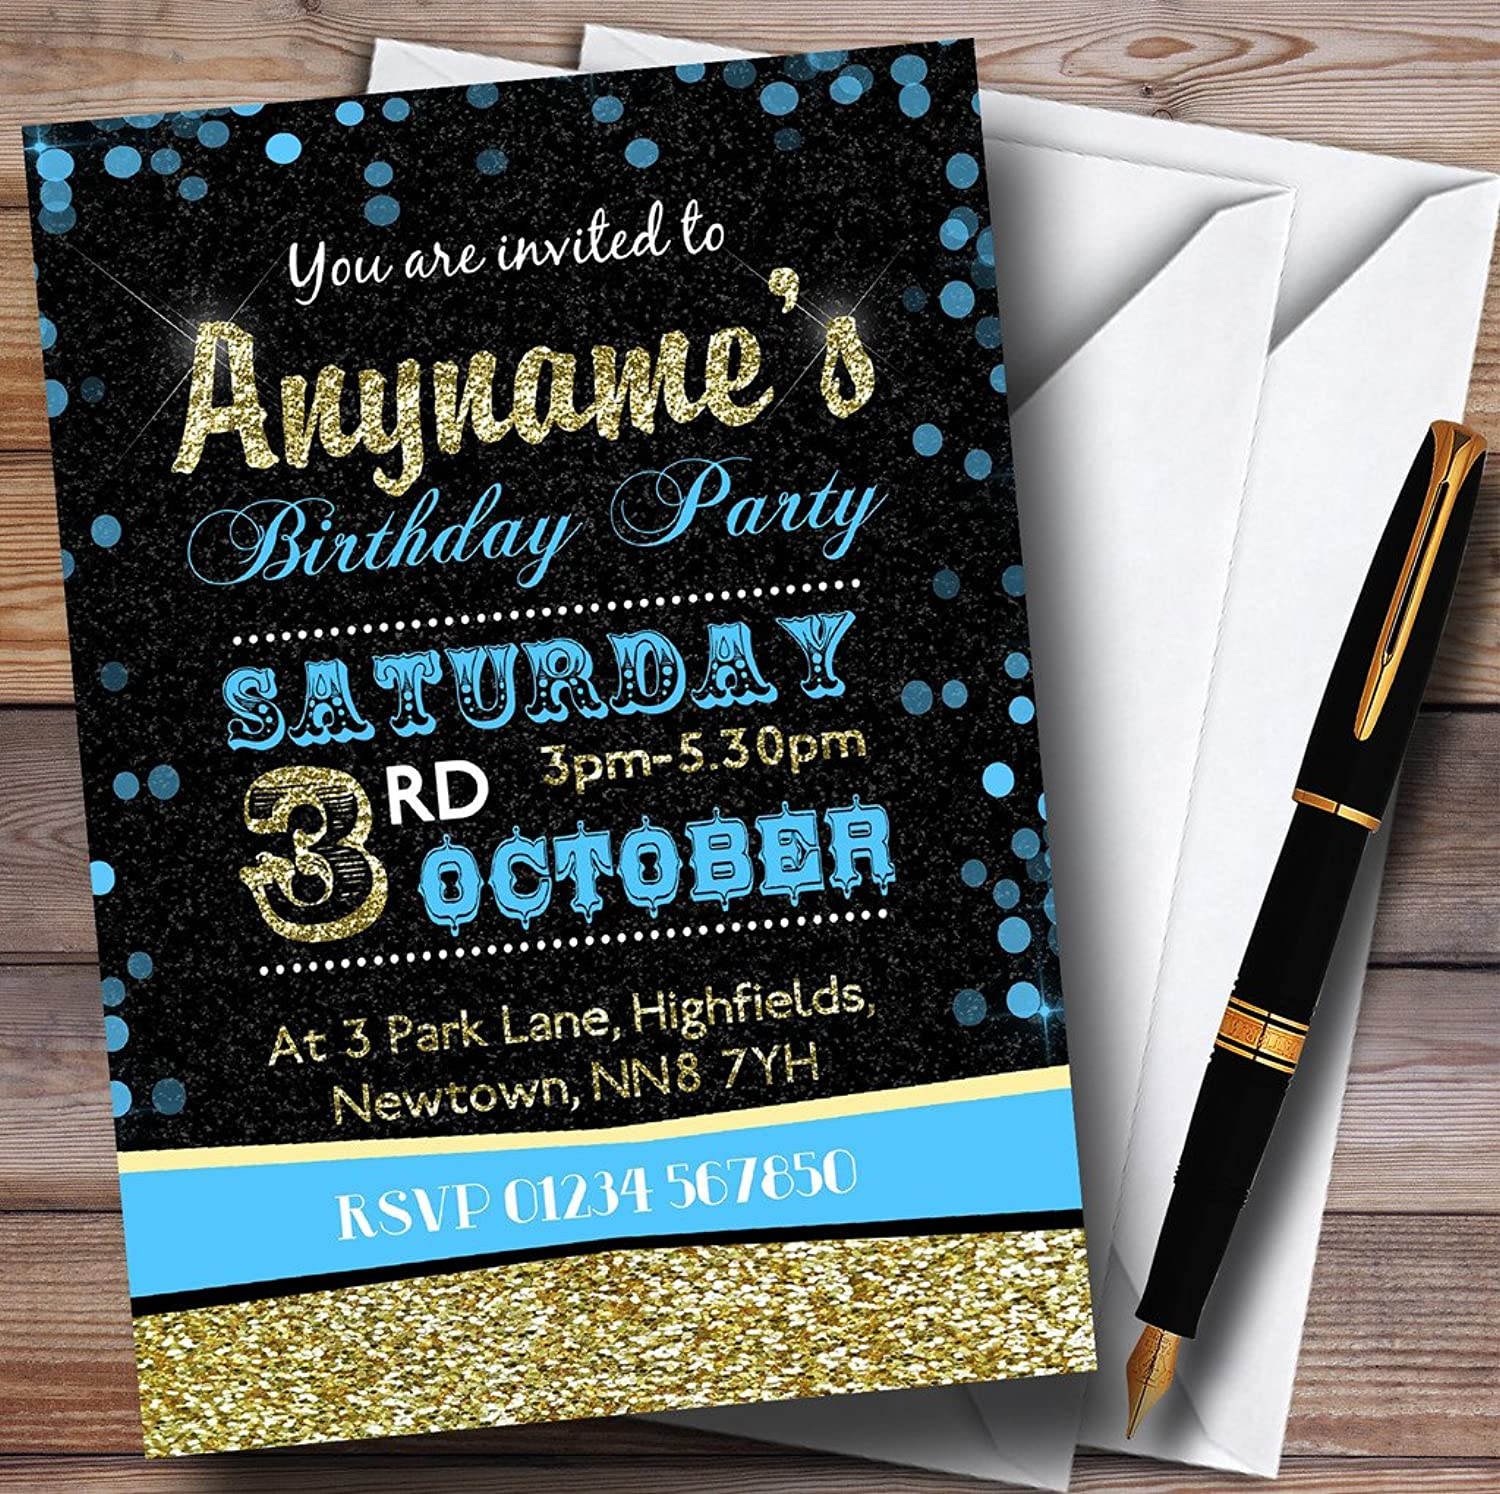 Glitter Look Sky bluee And gold Birthday Party Personalised Invitations   Invites & Envelopes